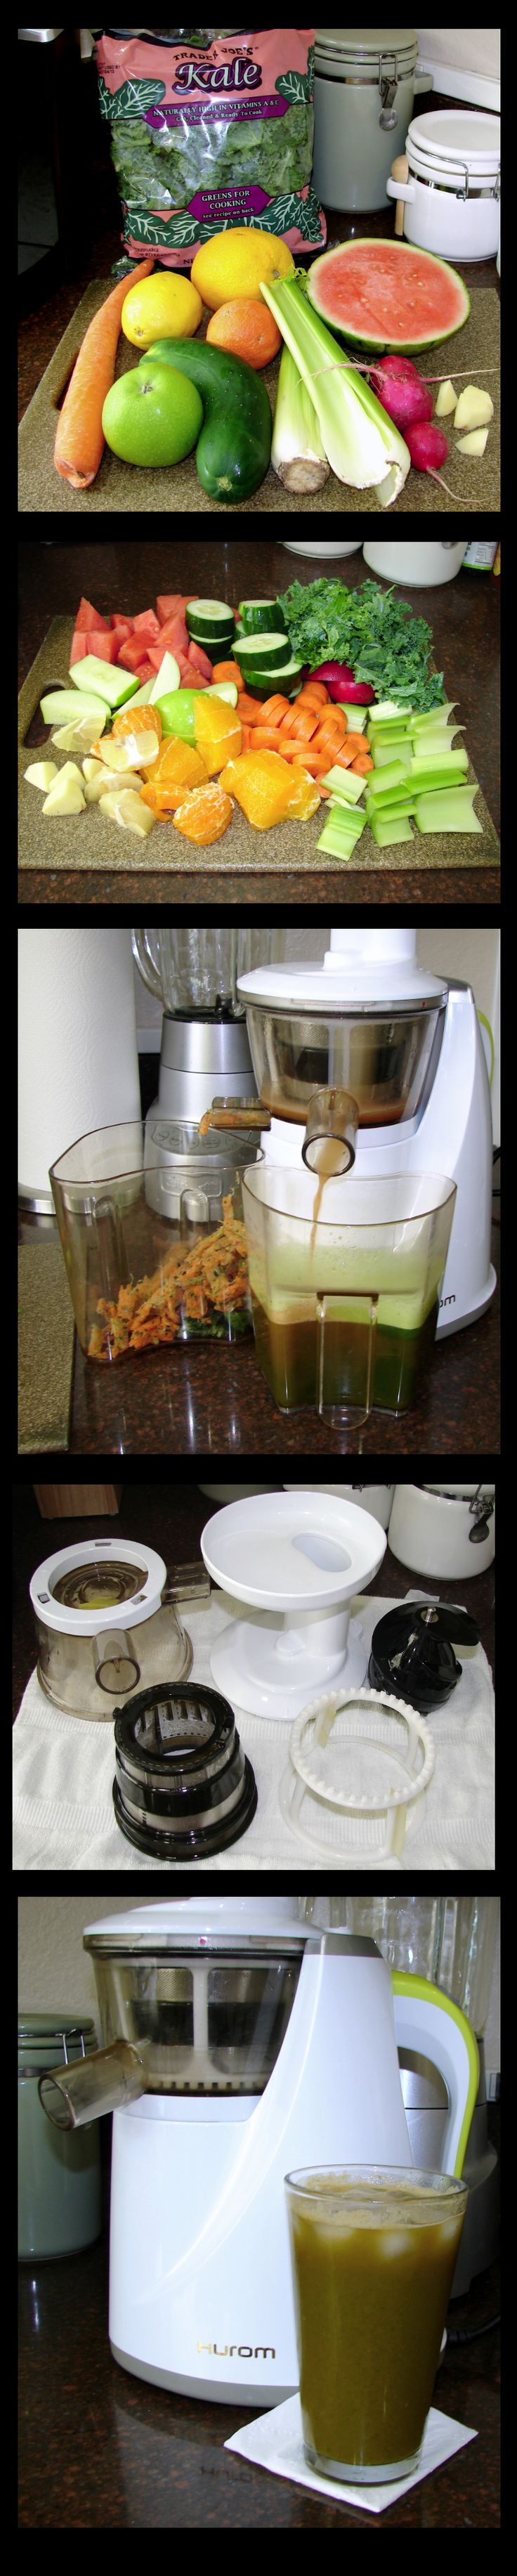 Slow Juicer For Ginger : 1000+ images about Best Juicer for Kale on Pinterest Kale, Apples and Best juicing recipes